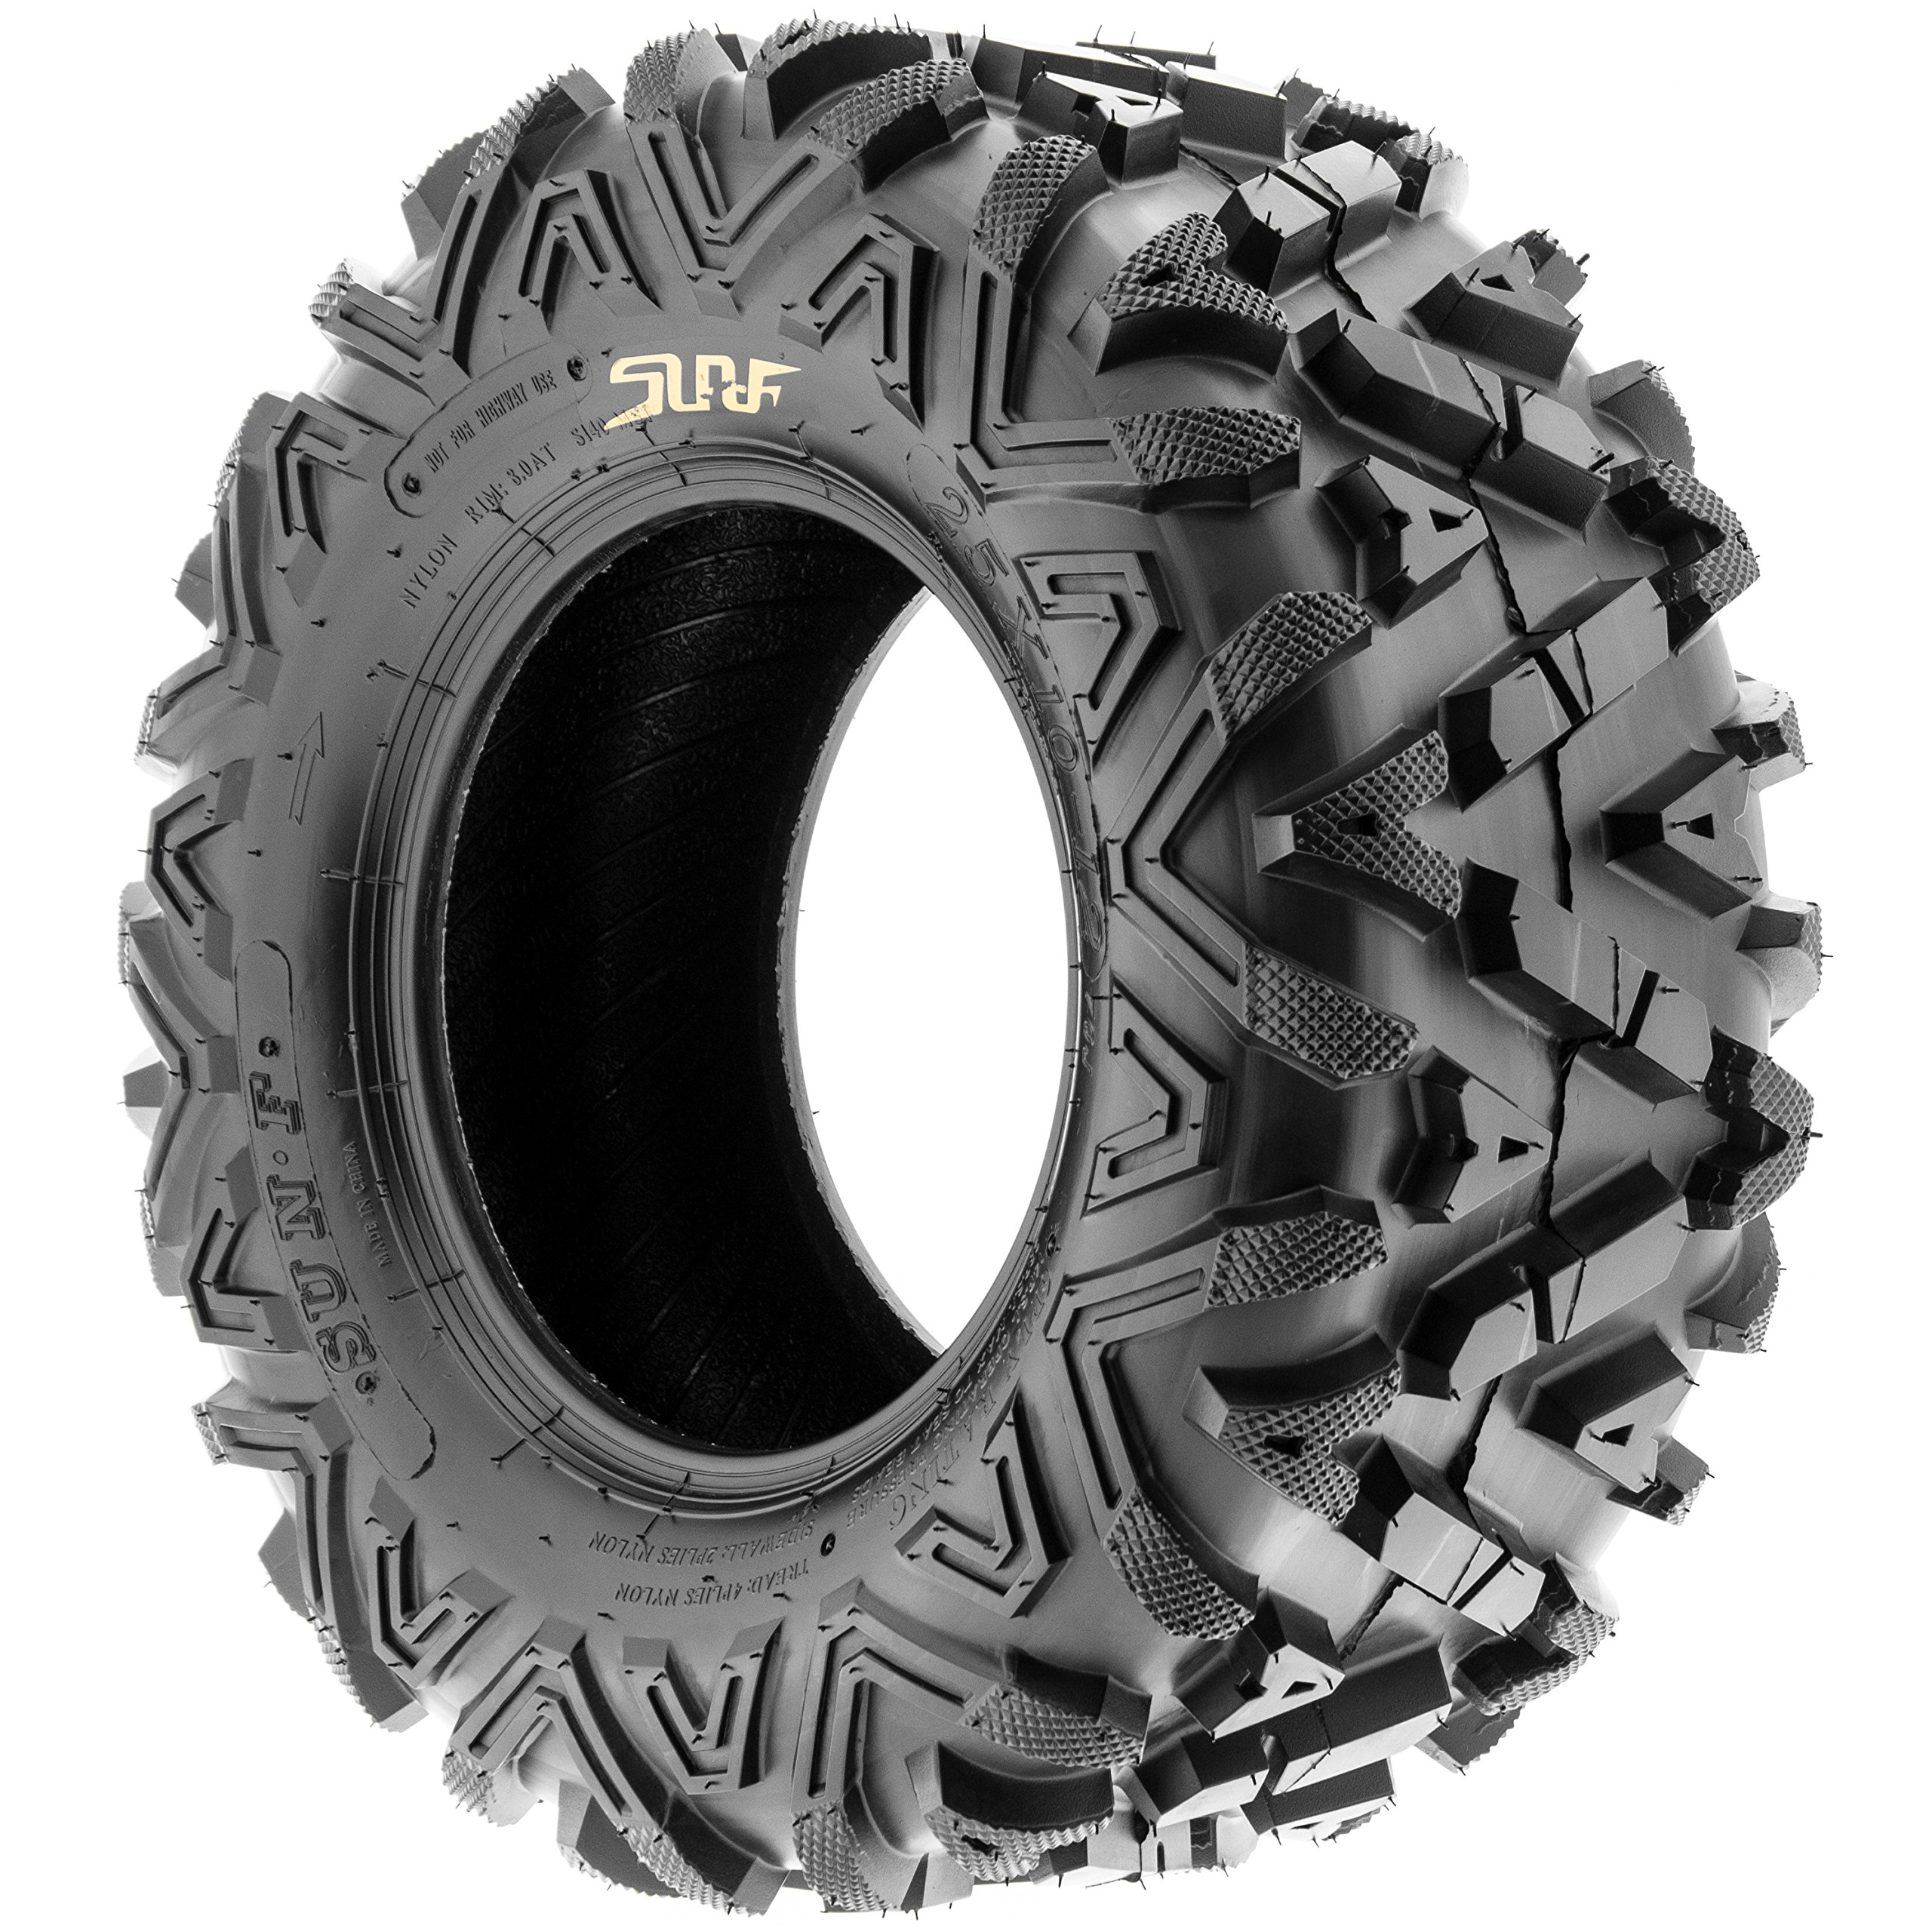 Pair of 2 SunF A033 Power.I AT 25x10-11 ATV UTV Off-Road Tires, All-Terrain, 6 PR, Tubeless by SUNF (Image #4)